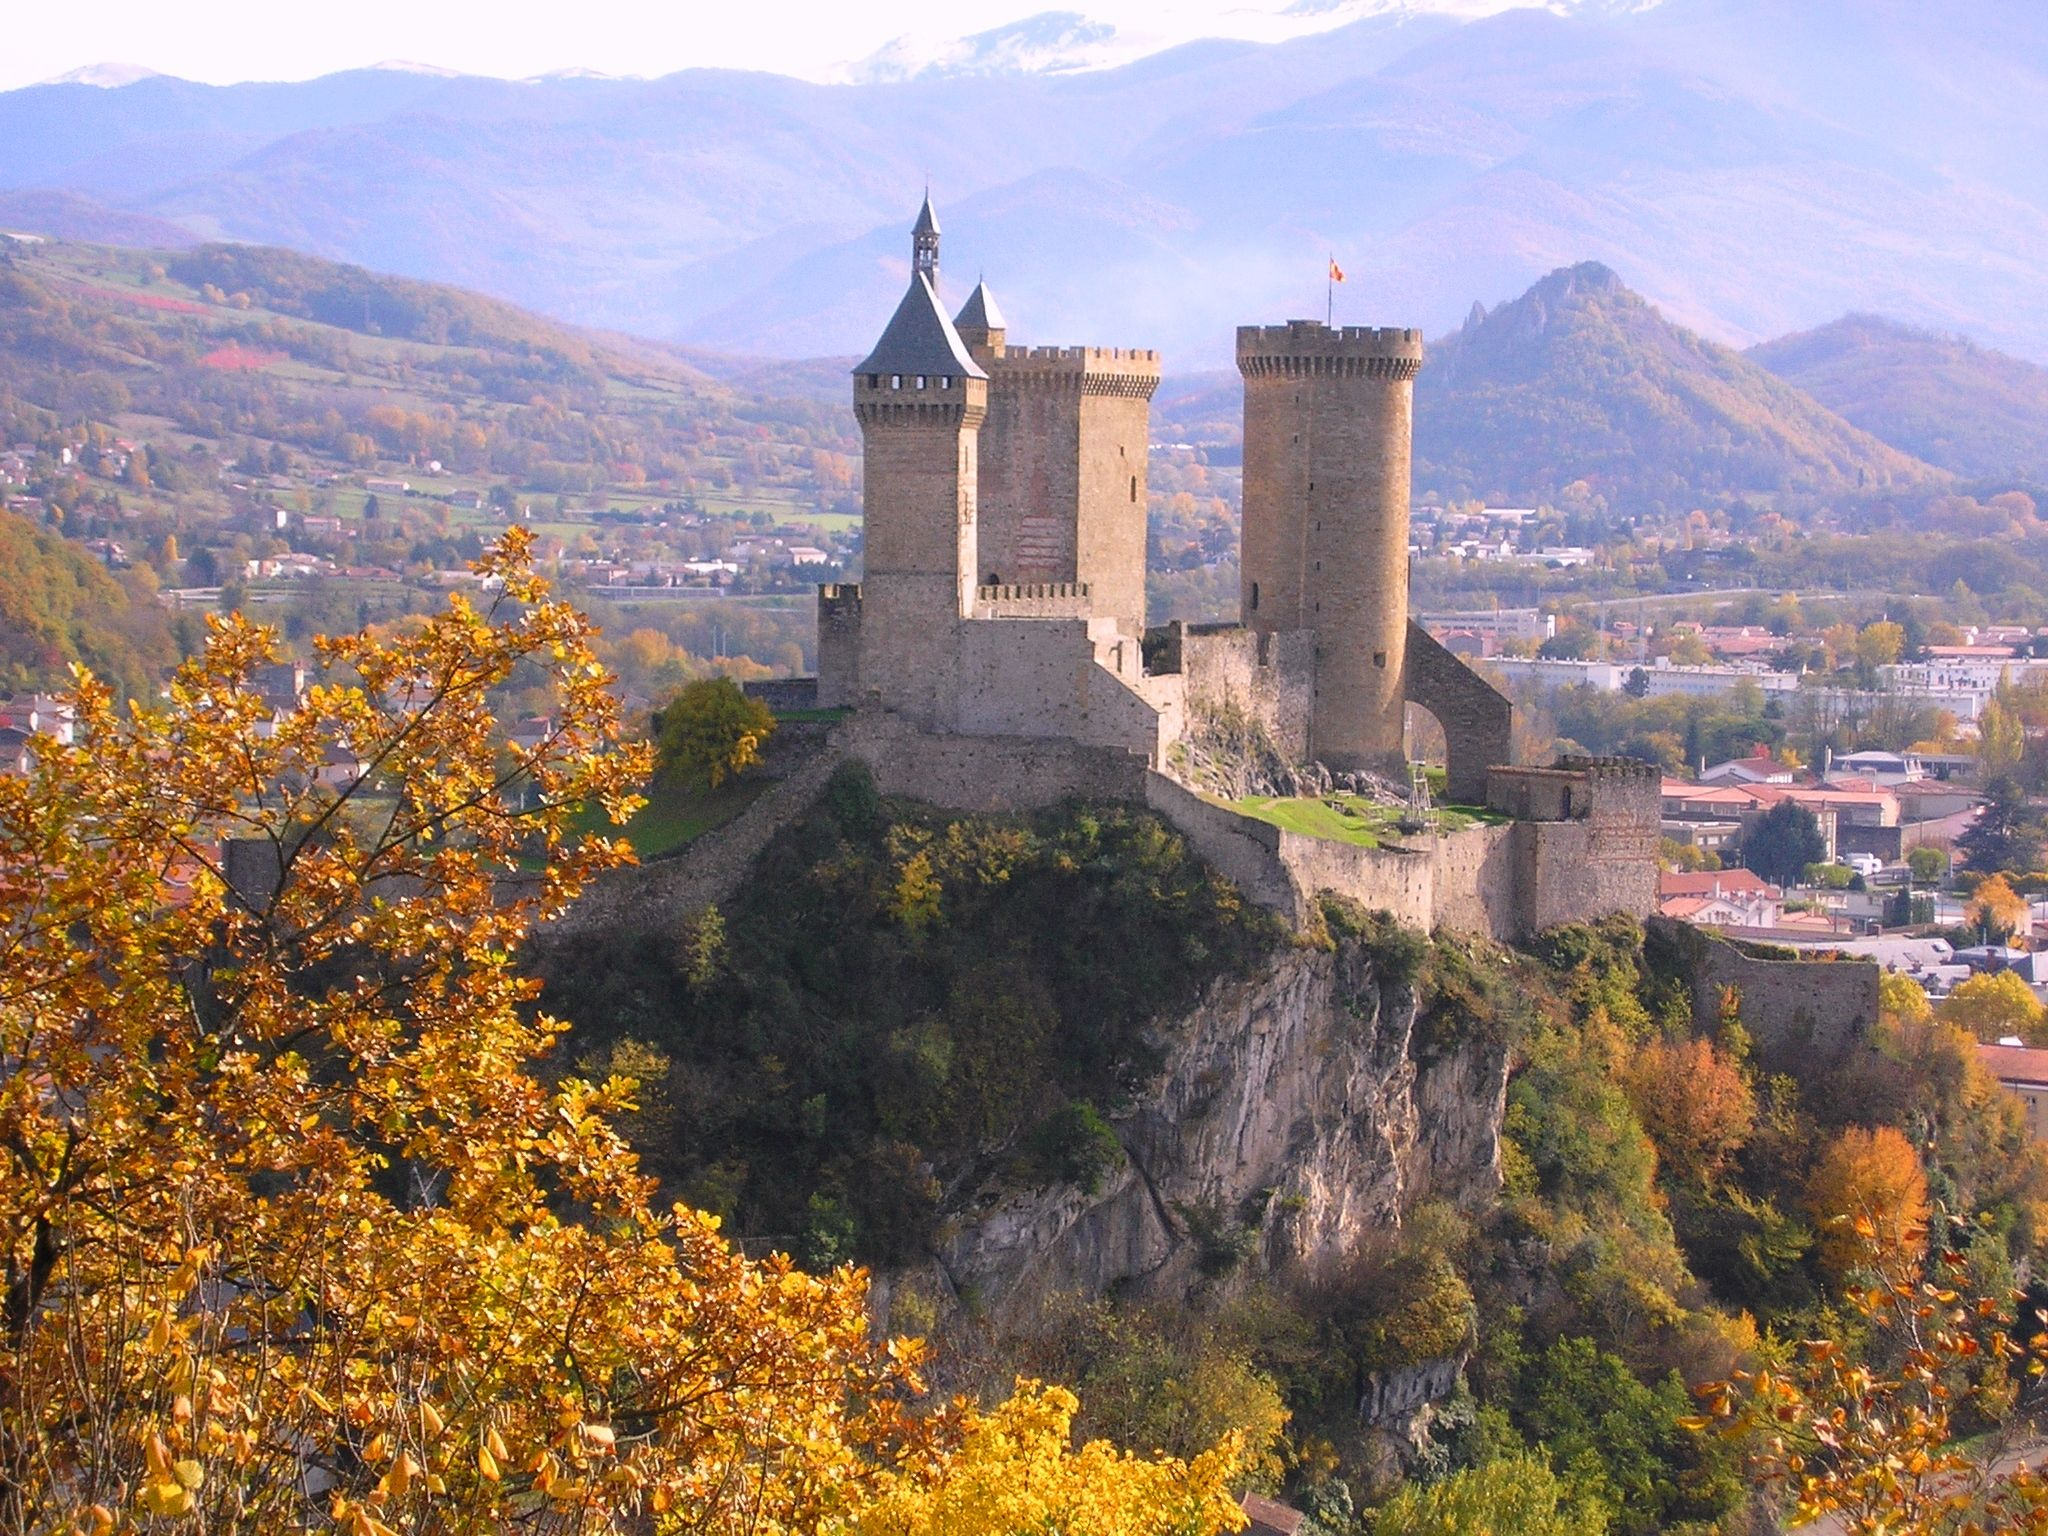 a history and role of medieval castles Could an analysis of medieval castles, then, shed light on the politics of today   culture-historical approaches have stressed [the castle's] military role   discussed the castle's social and symbolic role, the castle as a stage.